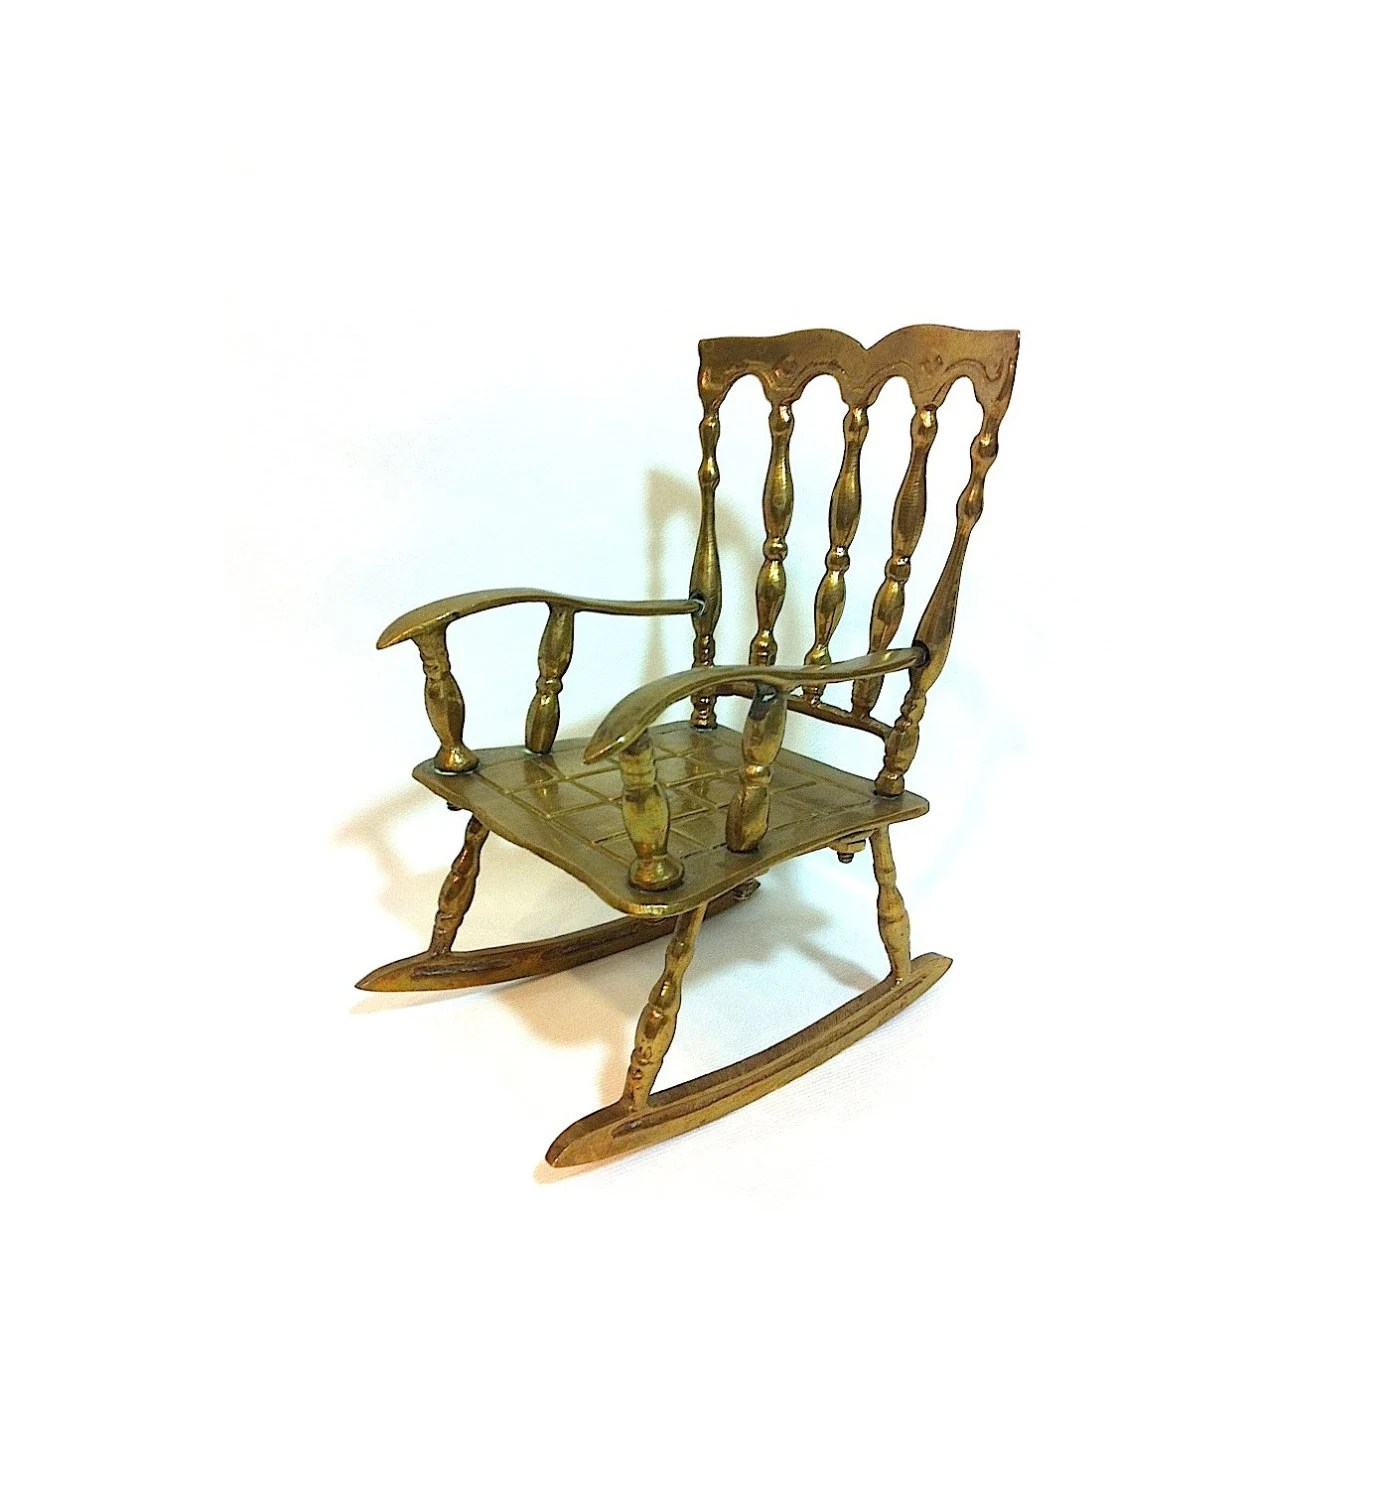 mini rocking chair fishing game set vintage miniature metal doll brass